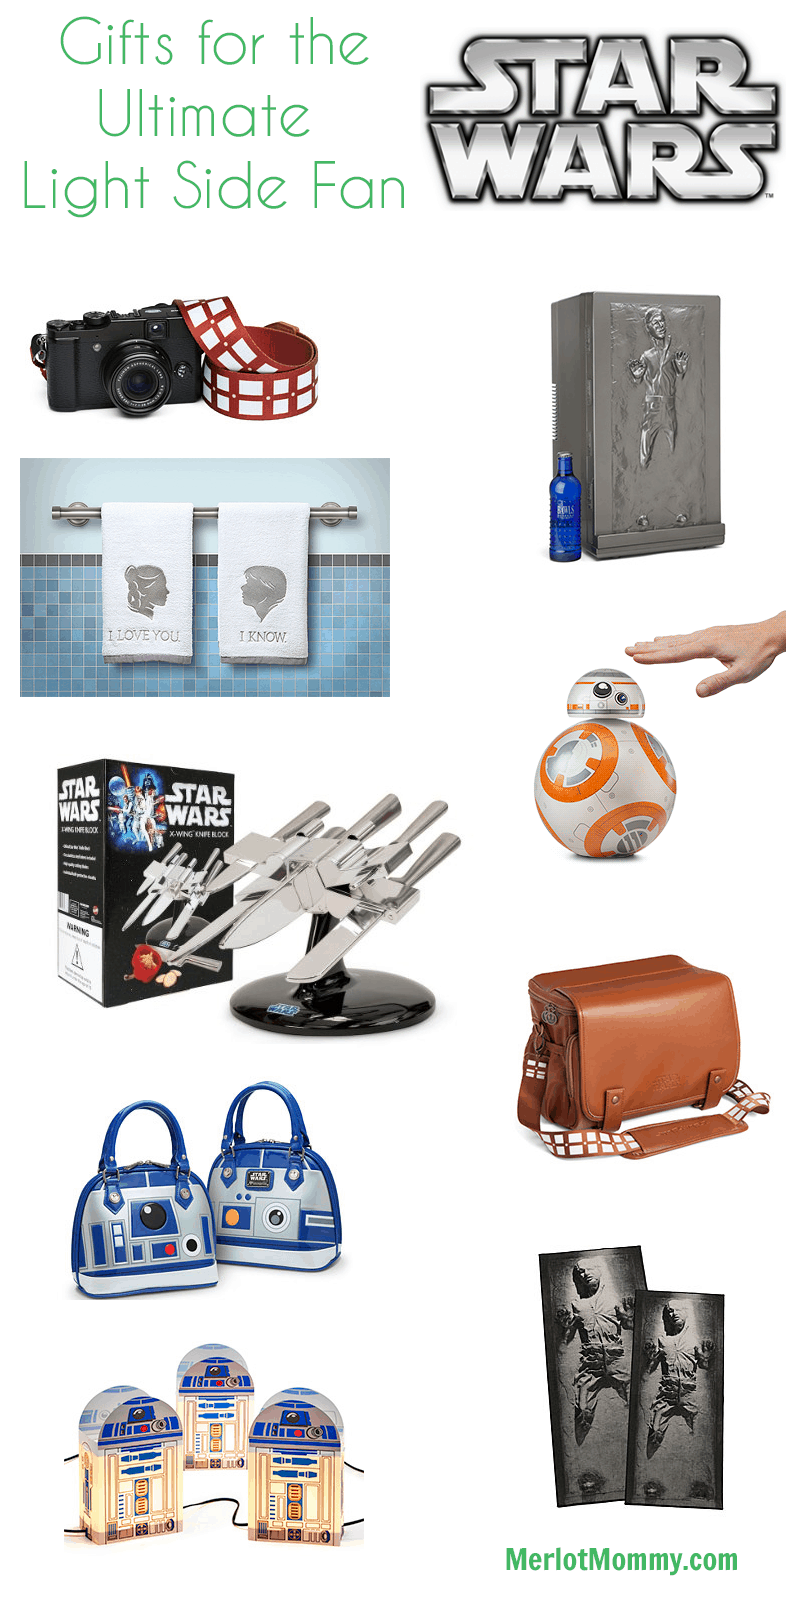 The Ultimate Star Wars Light Side Gift Guide